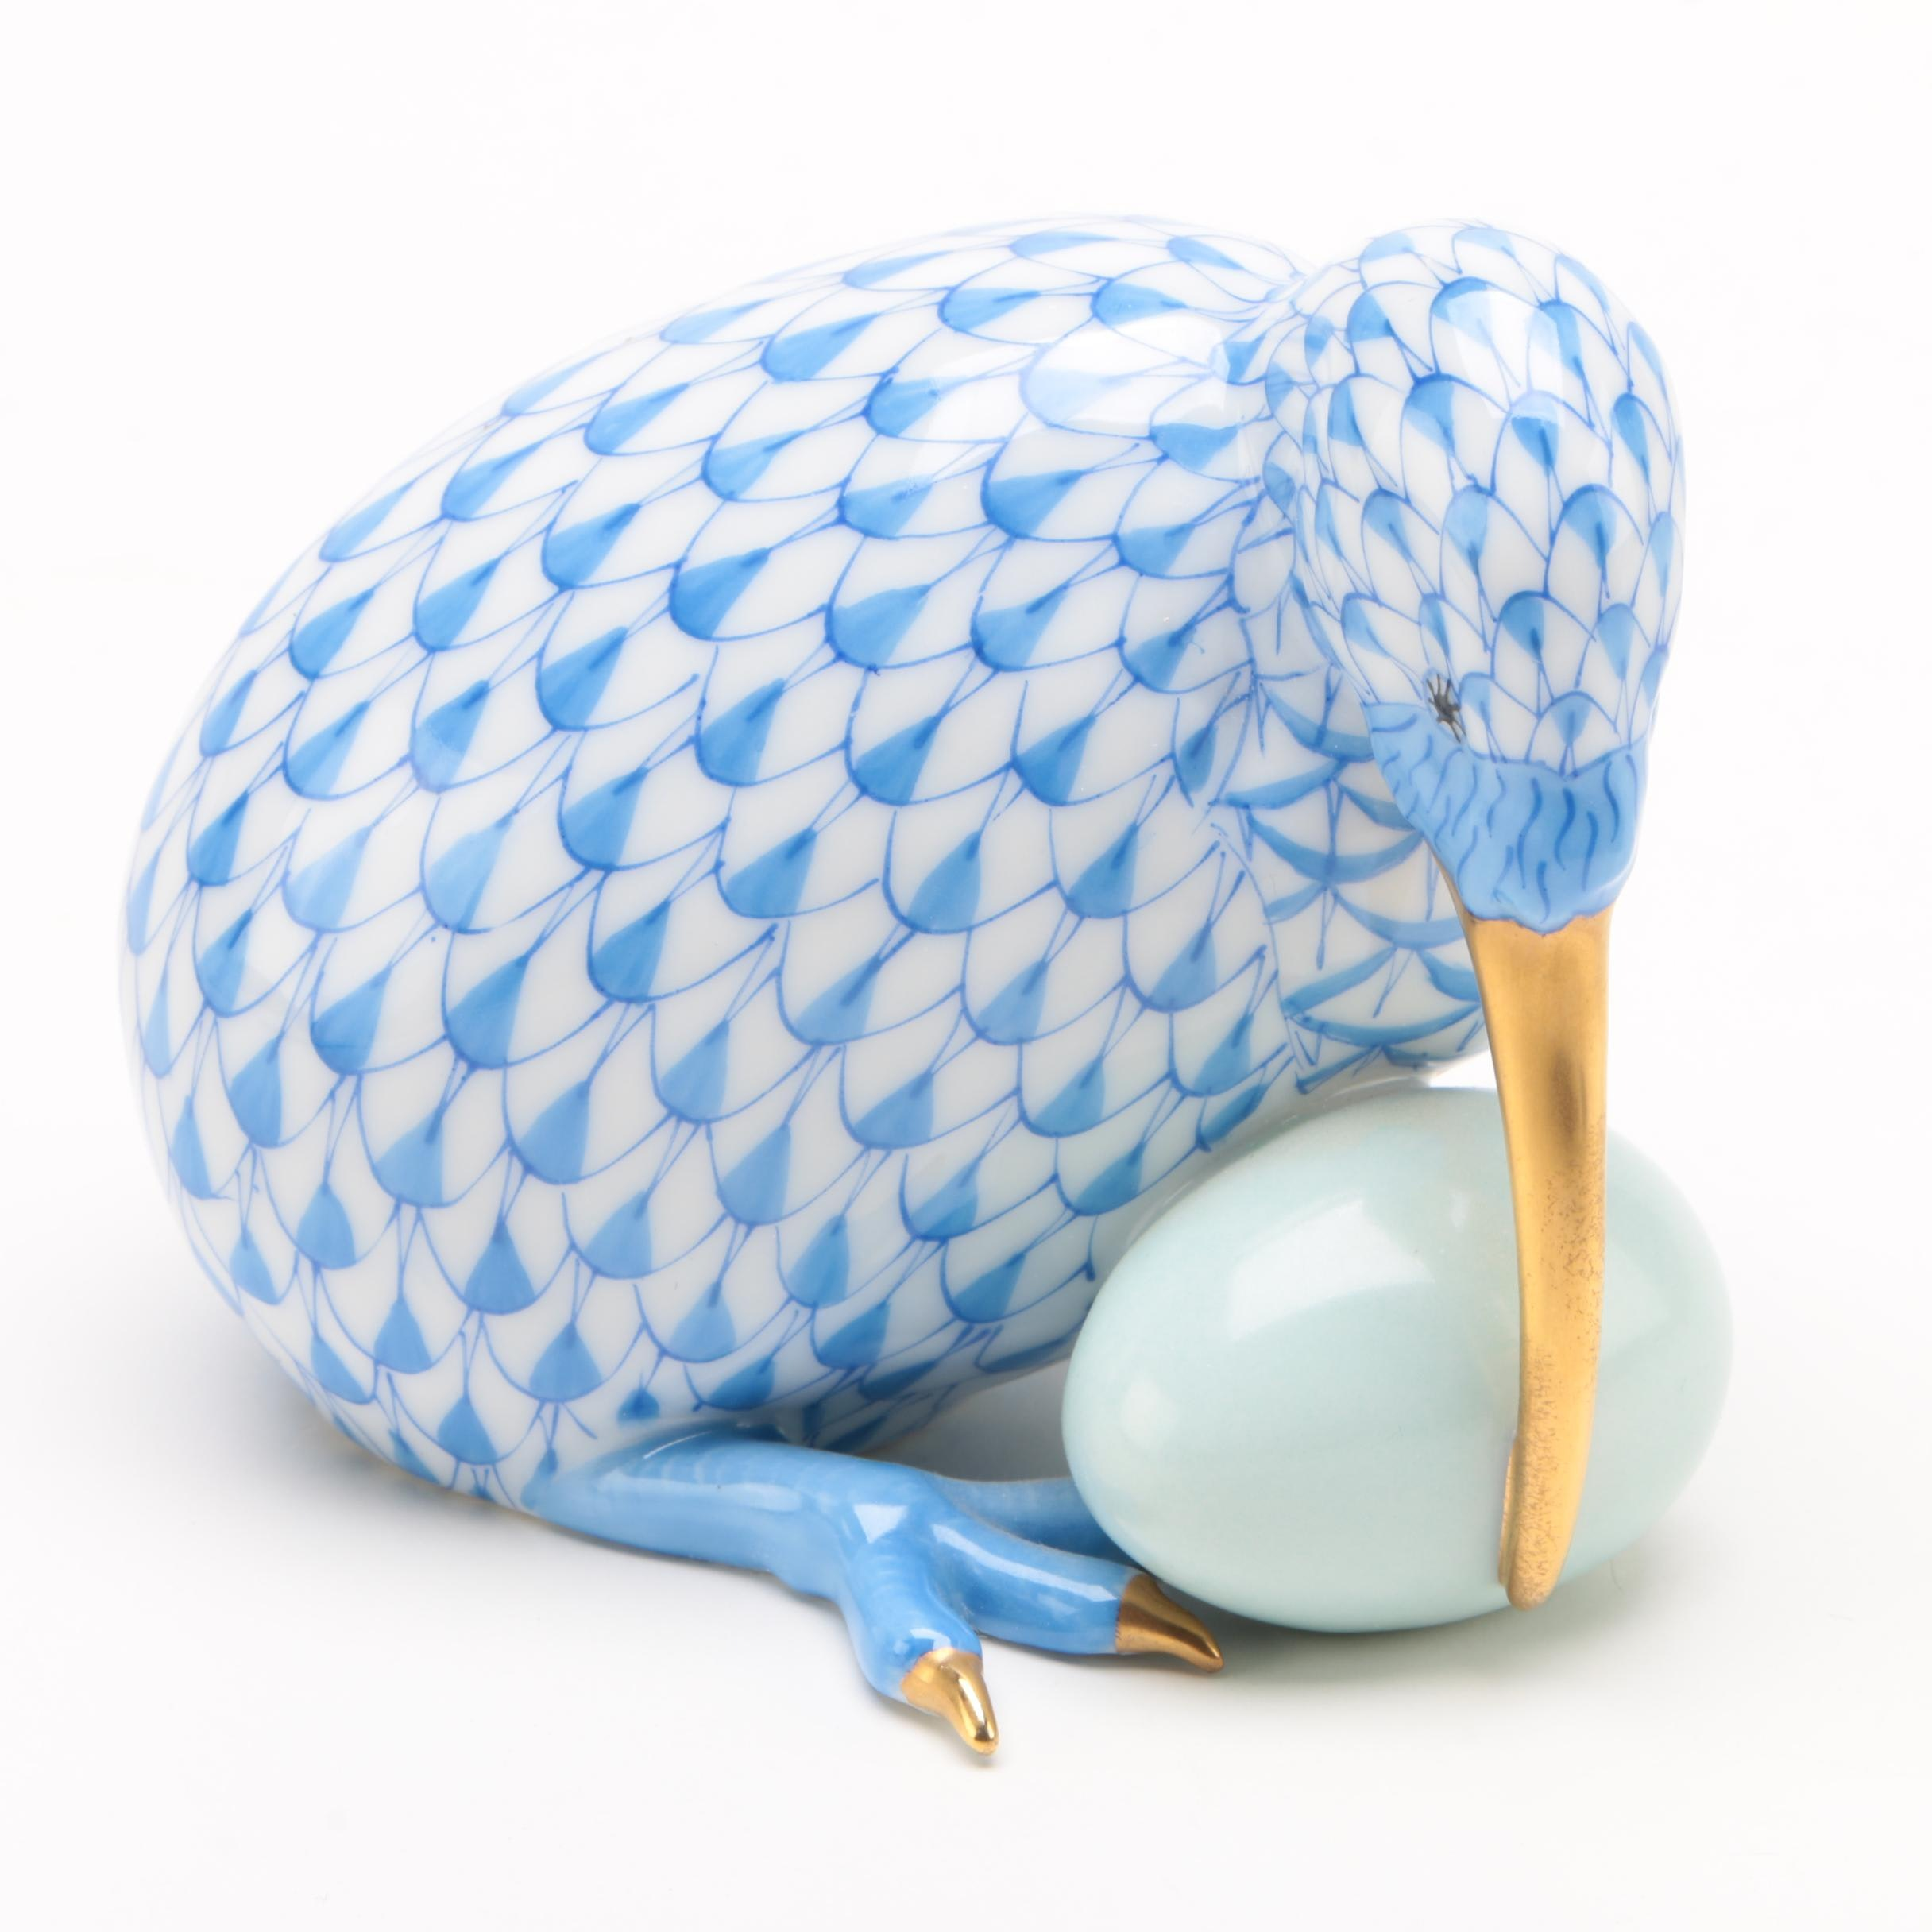 "Herend Blue Fishnet ""Kiwi Bird with Egg"" Porcelain Figurine, May 1992"